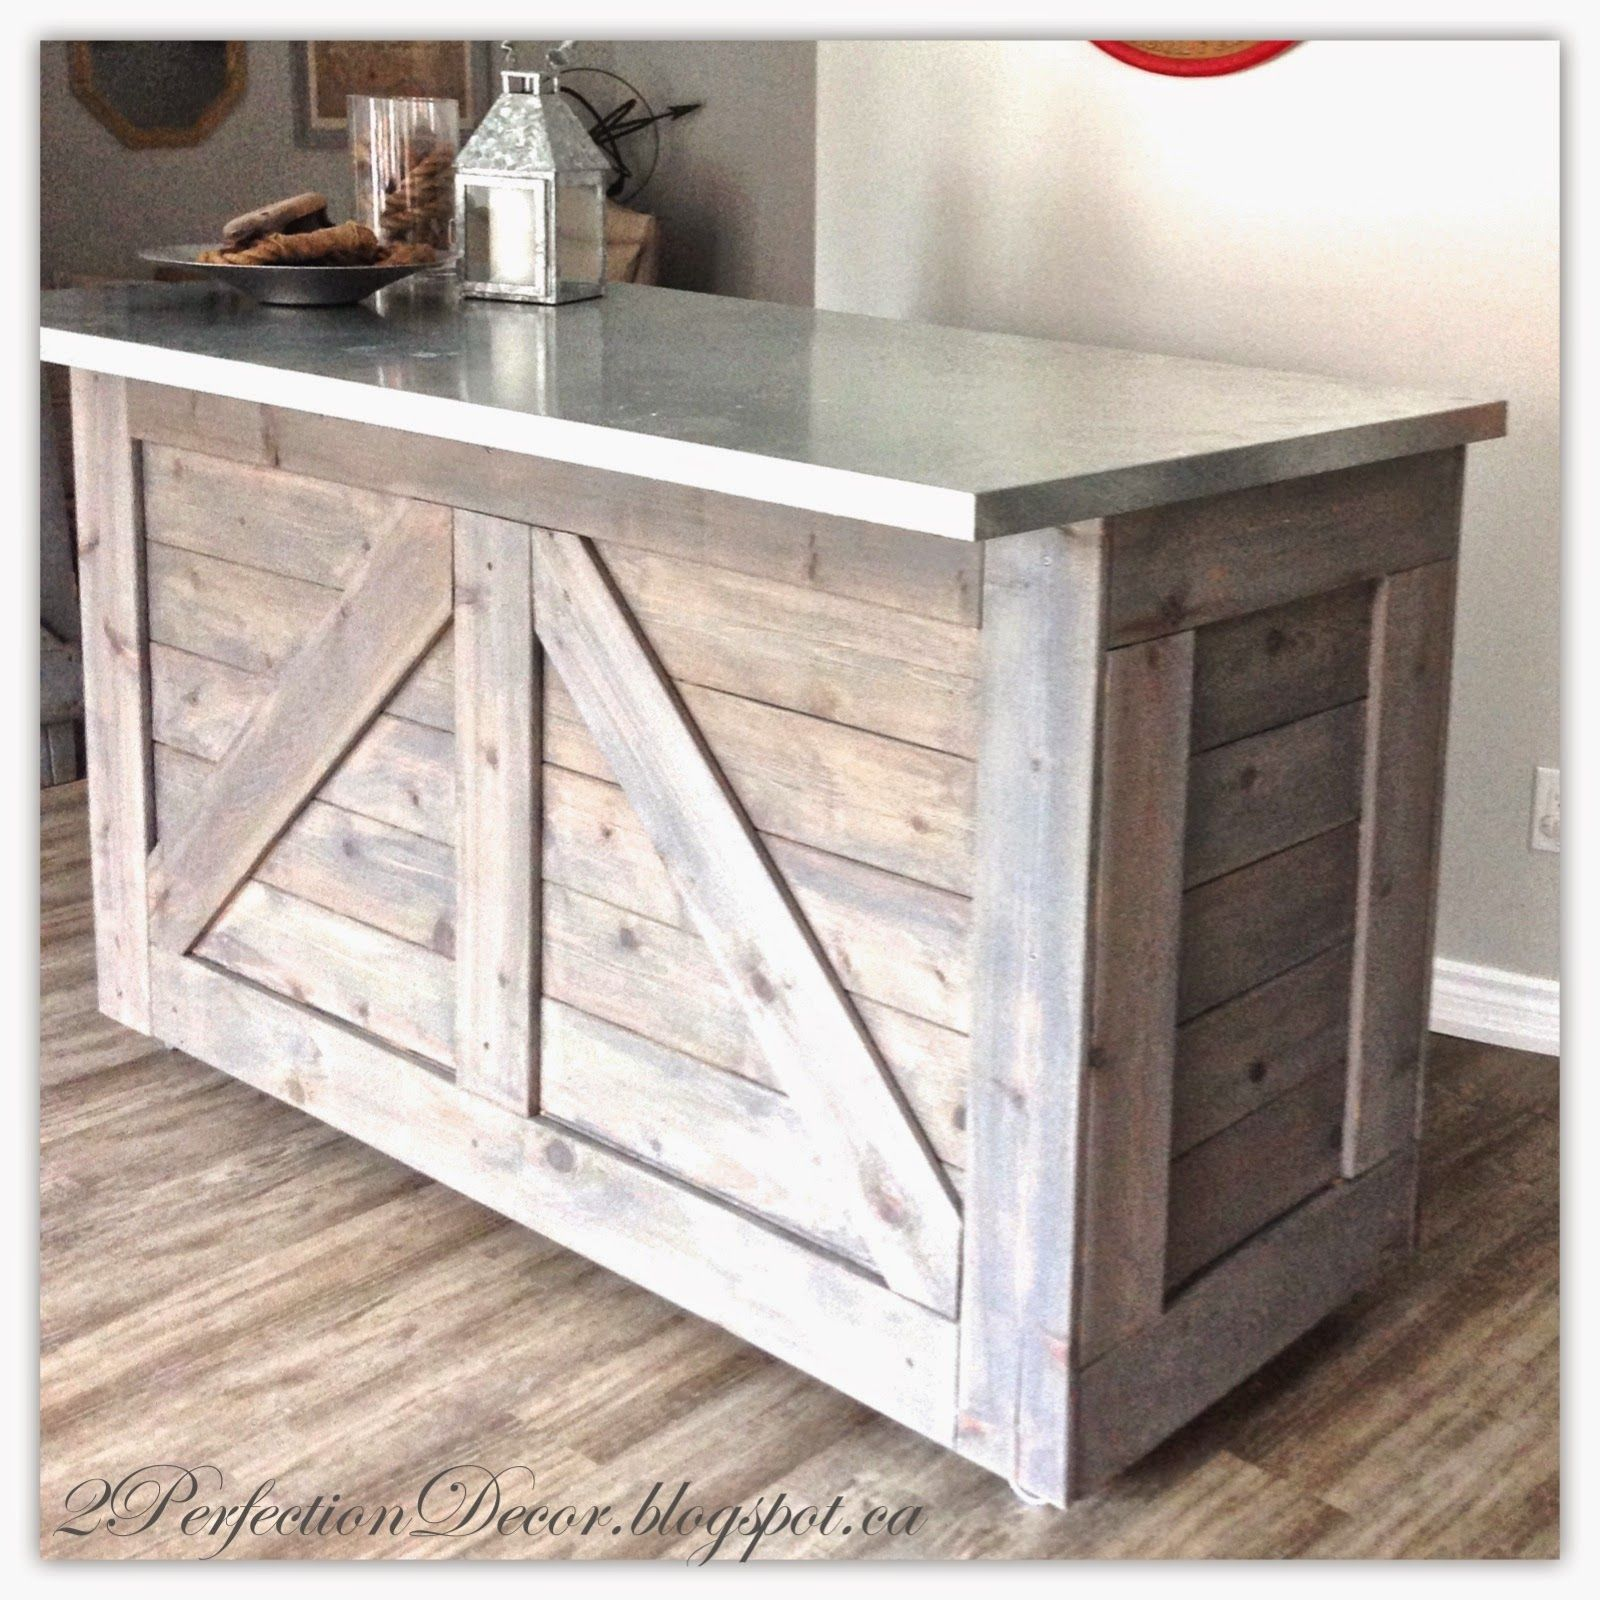 IKEA Hack Rustic Bar With Galvanized Metal Top  Remodelaholic